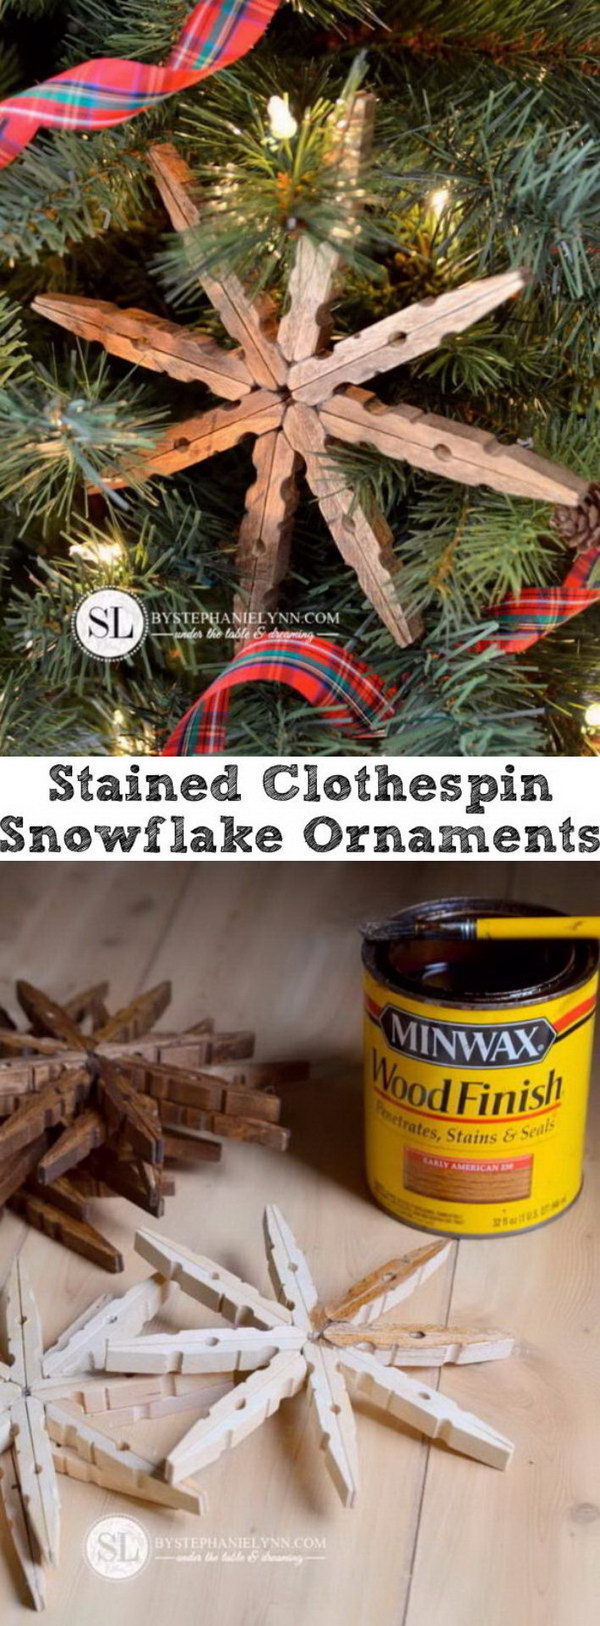 Stained Clothespin Snowflake Ornaments.